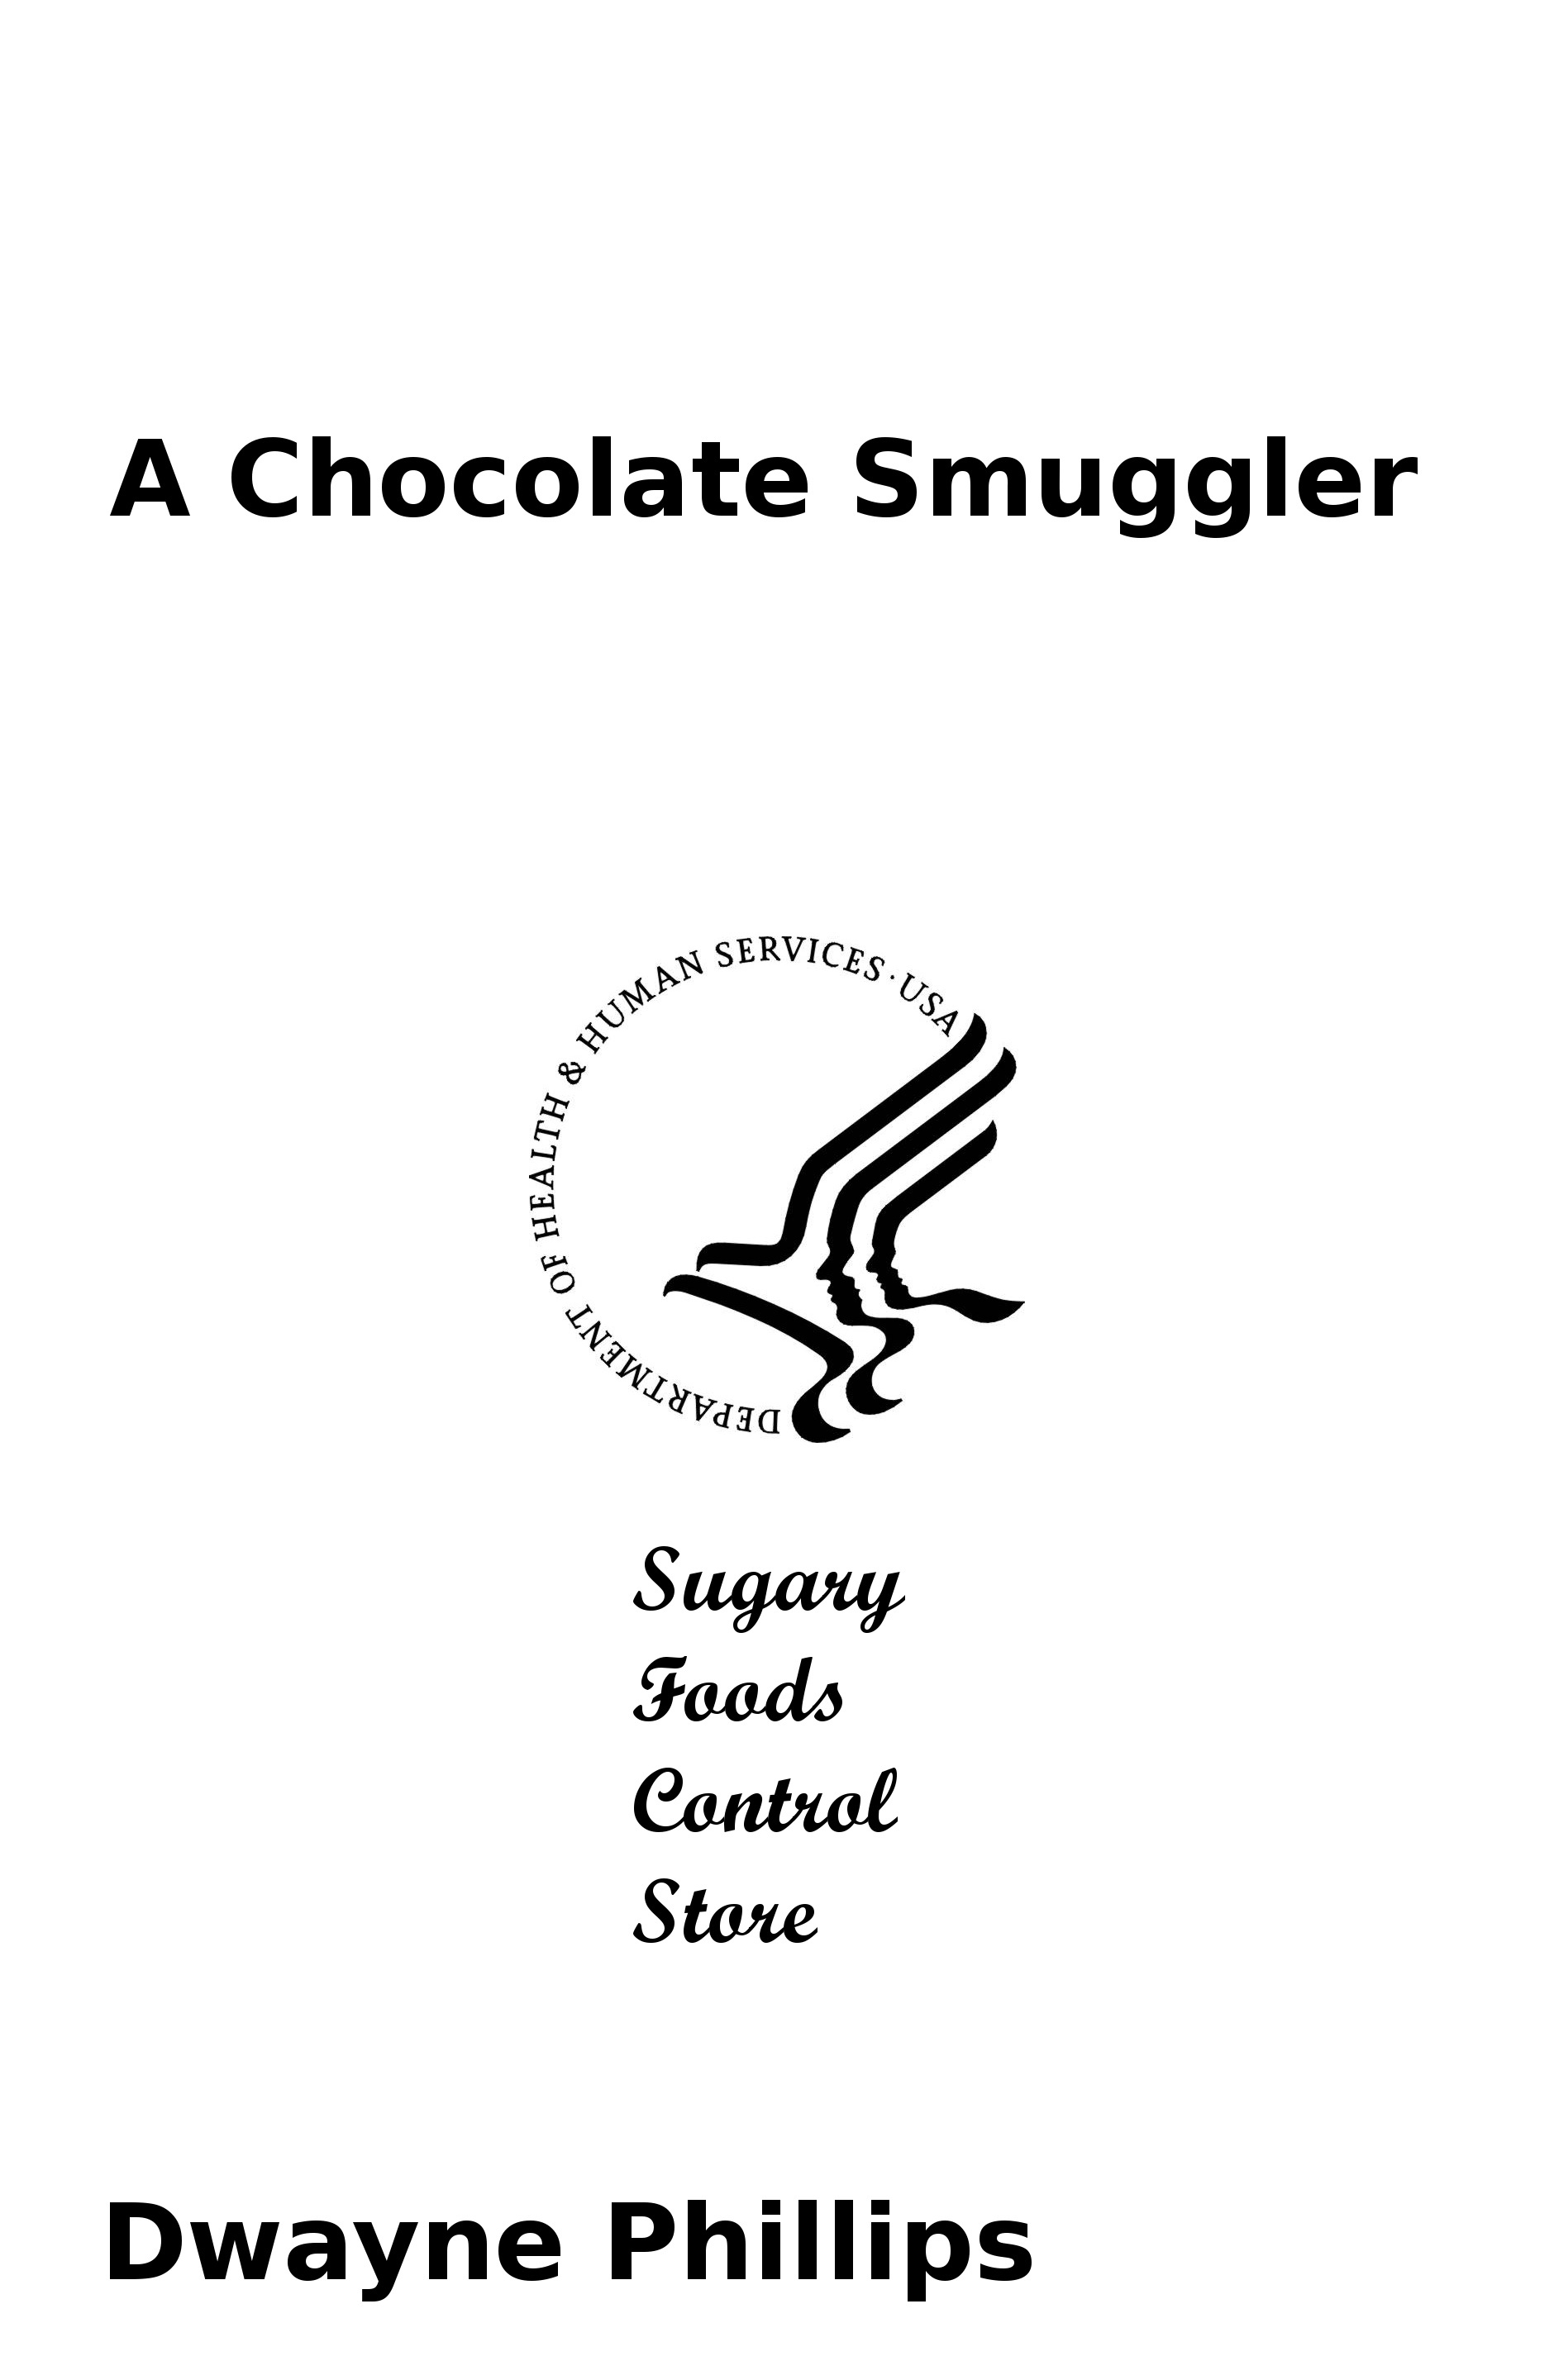 A Chocolate Smuggler